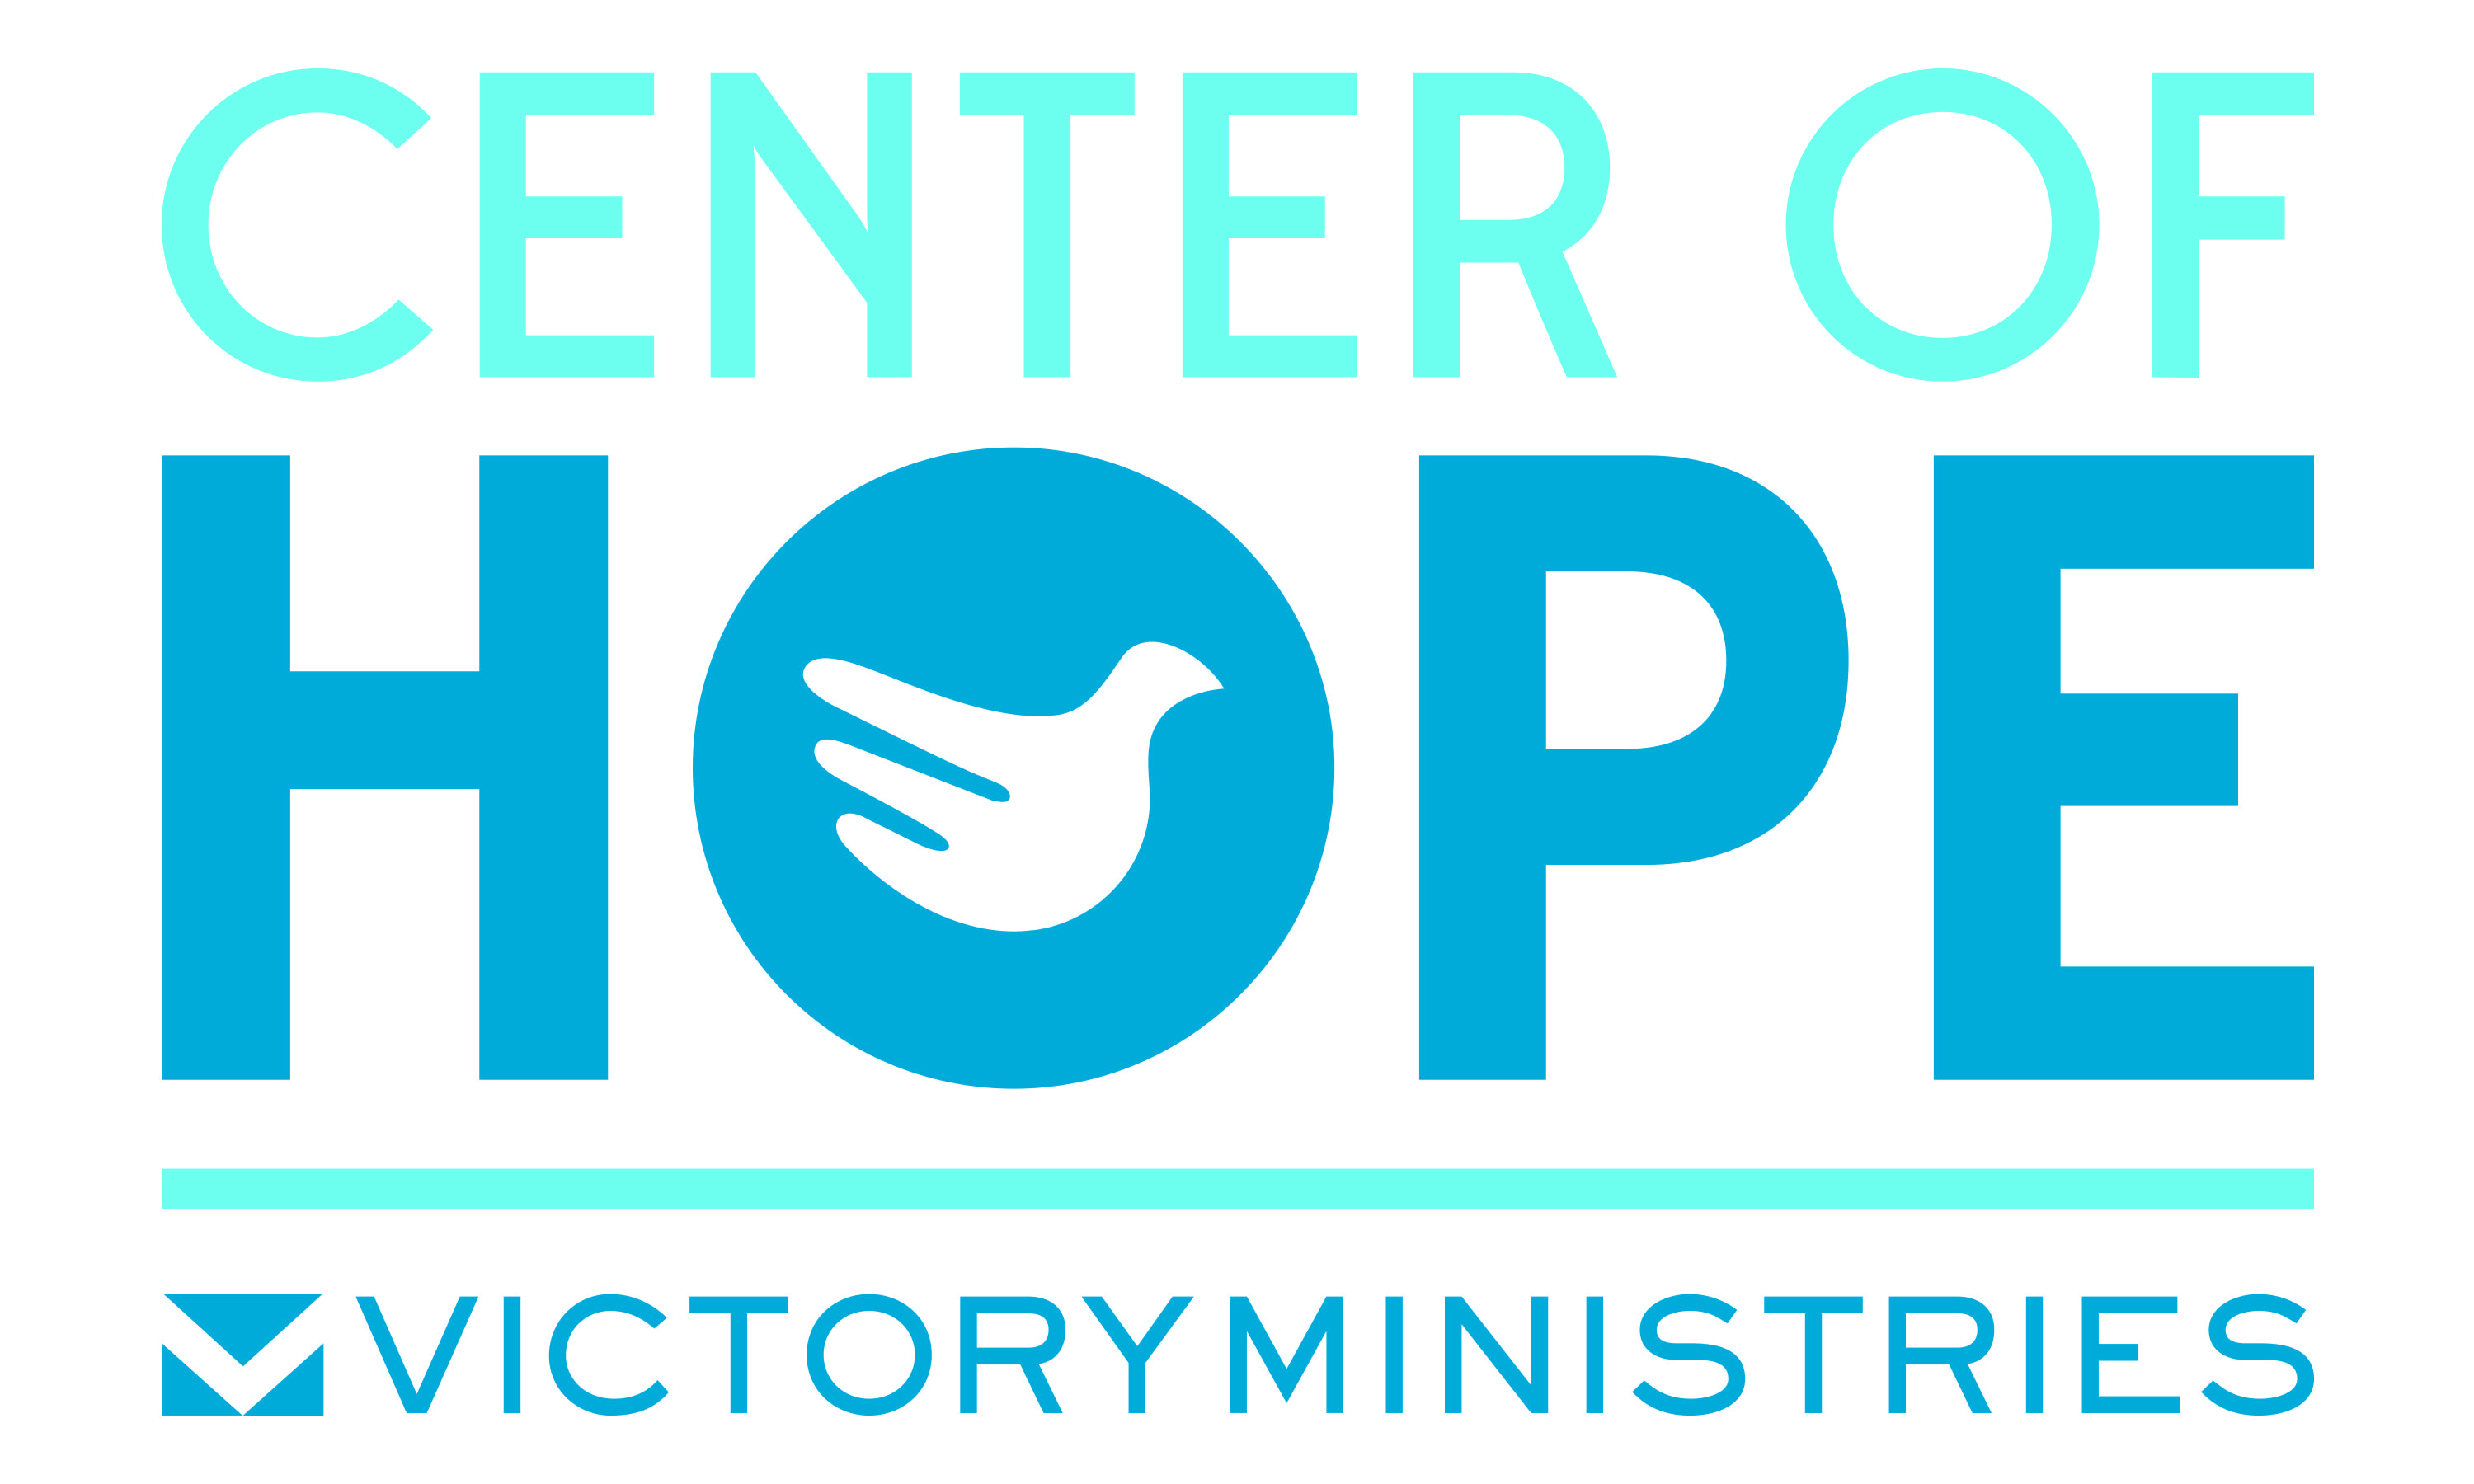 Victory Ministries - Center of Hope Logo